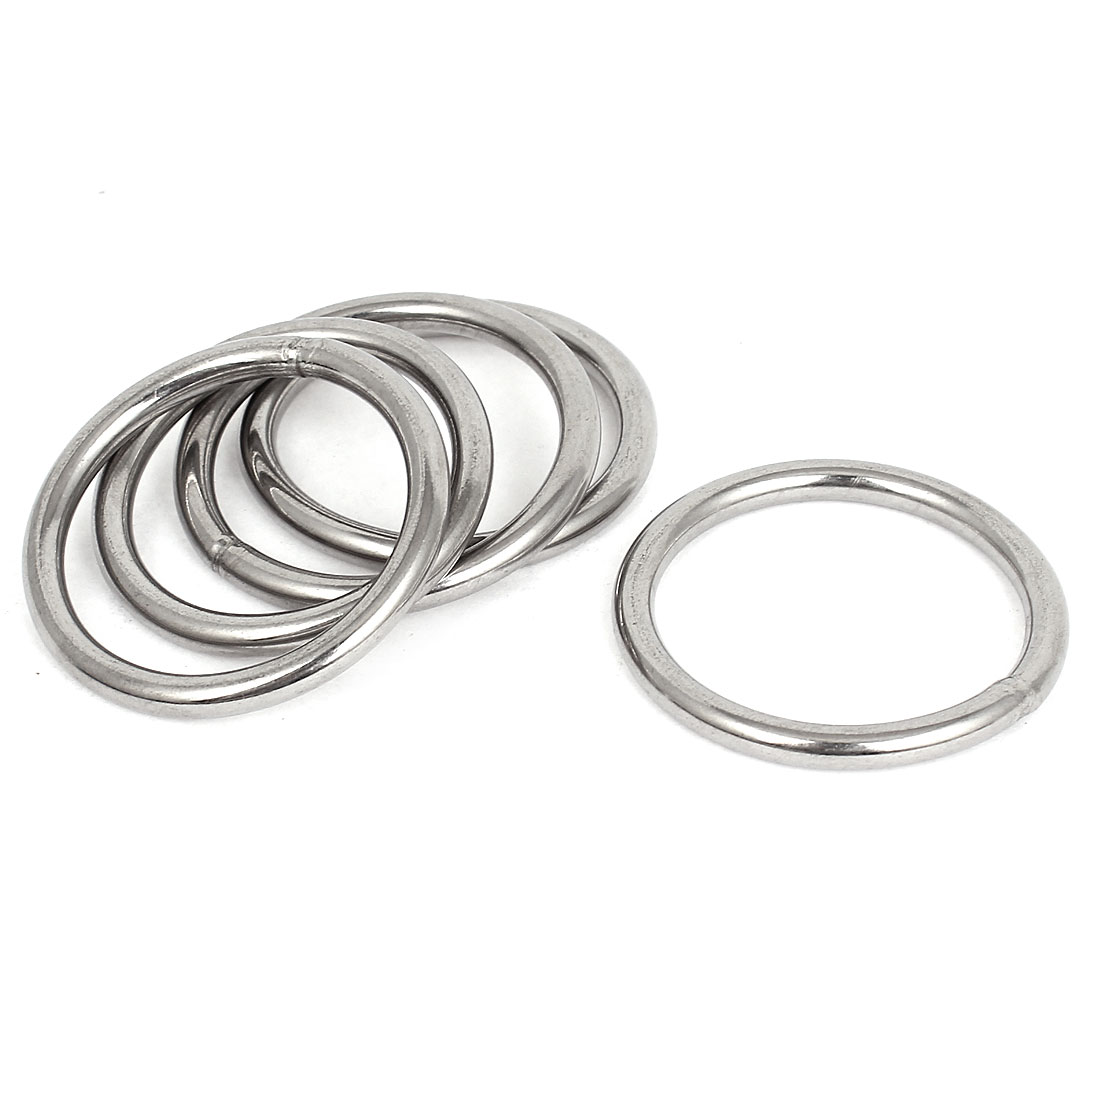 50mmx40mmx5mm Stainless Steel Webbing Strapping Welded O Rings 5 Pcs